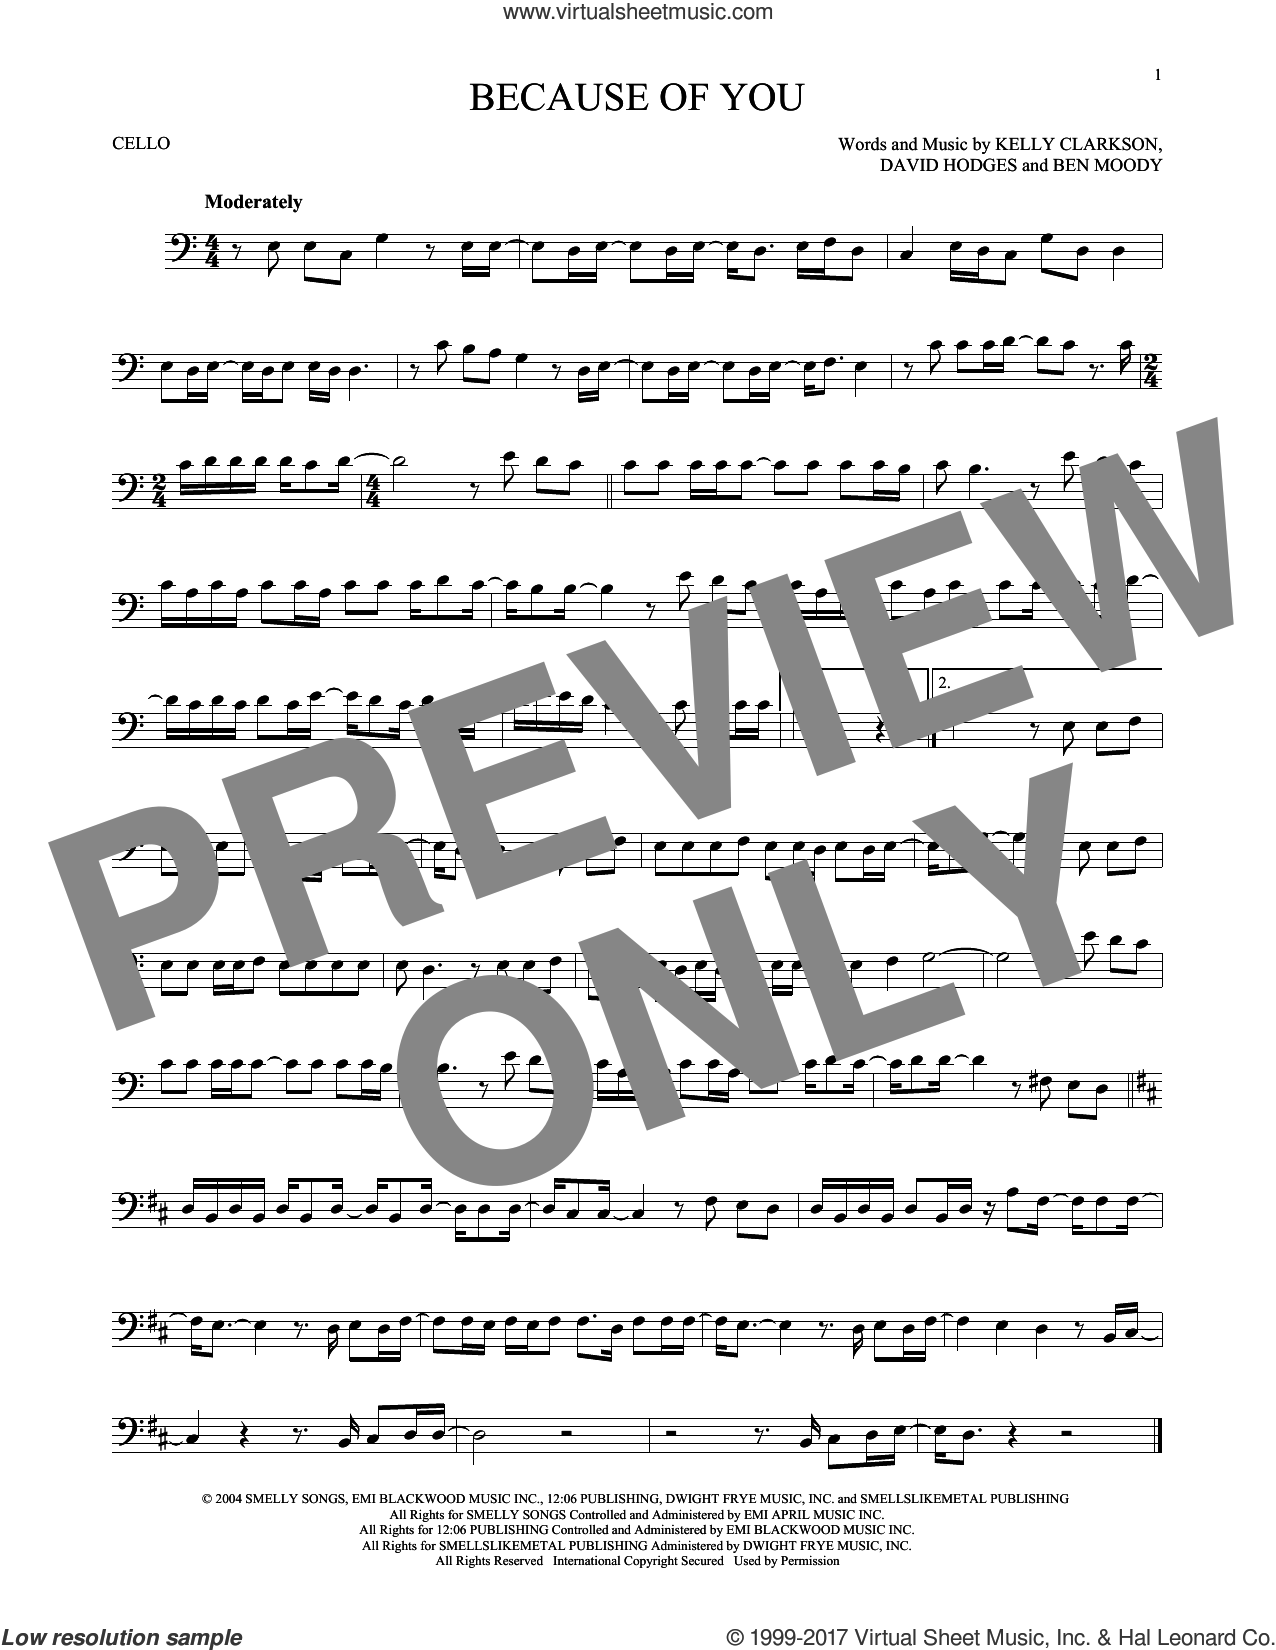 Because Of You sheet music for cello solo by Kelly Clarkson, Ben Moody and David Hodges, intermediate. Score Image Preview.